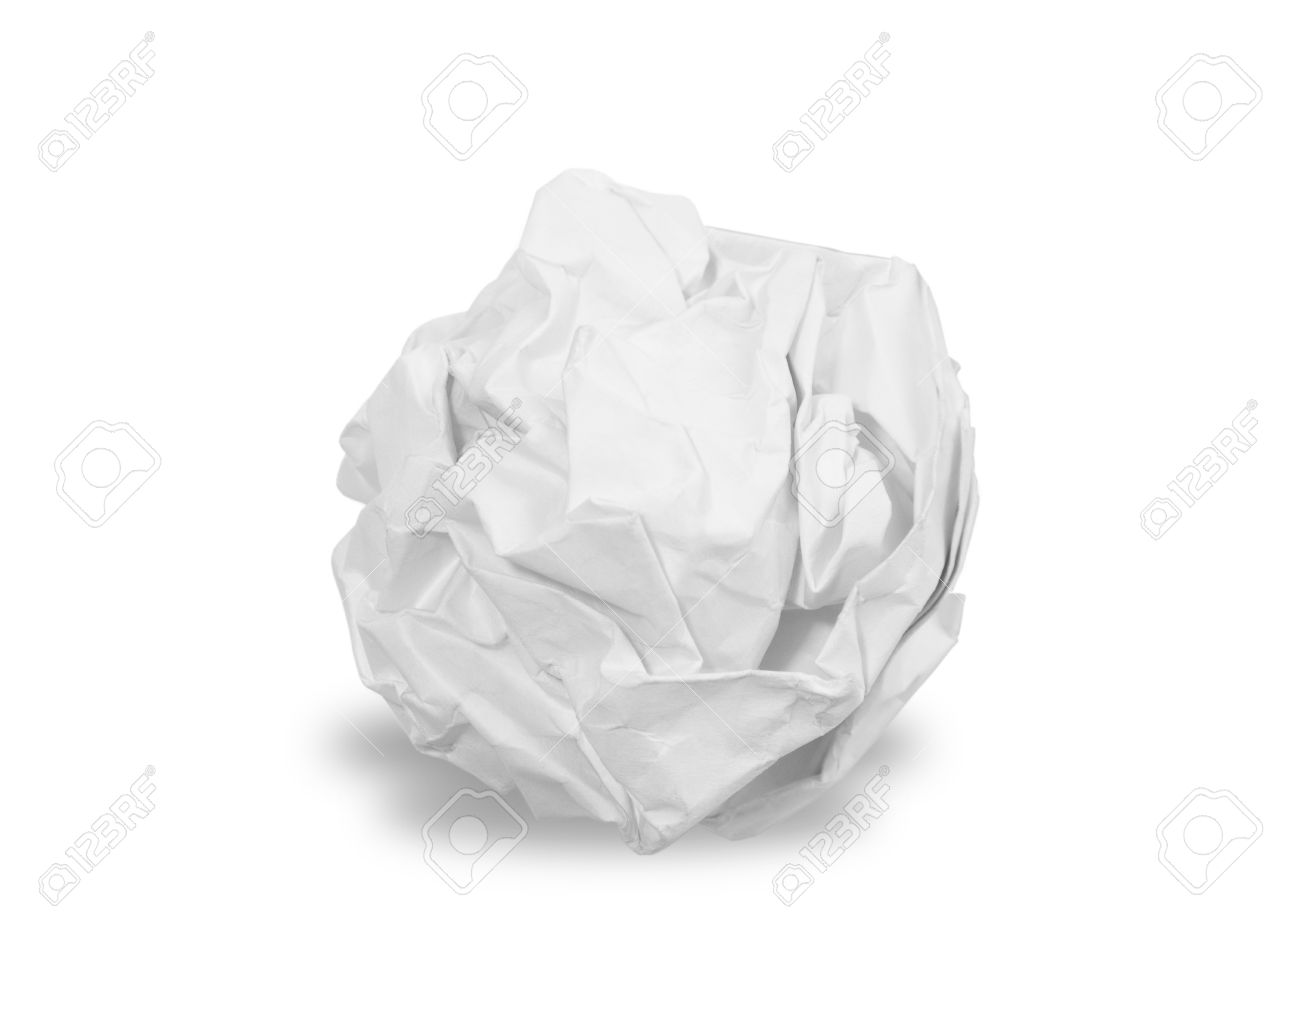 Crumpled paper ball isolated over white - 48288744